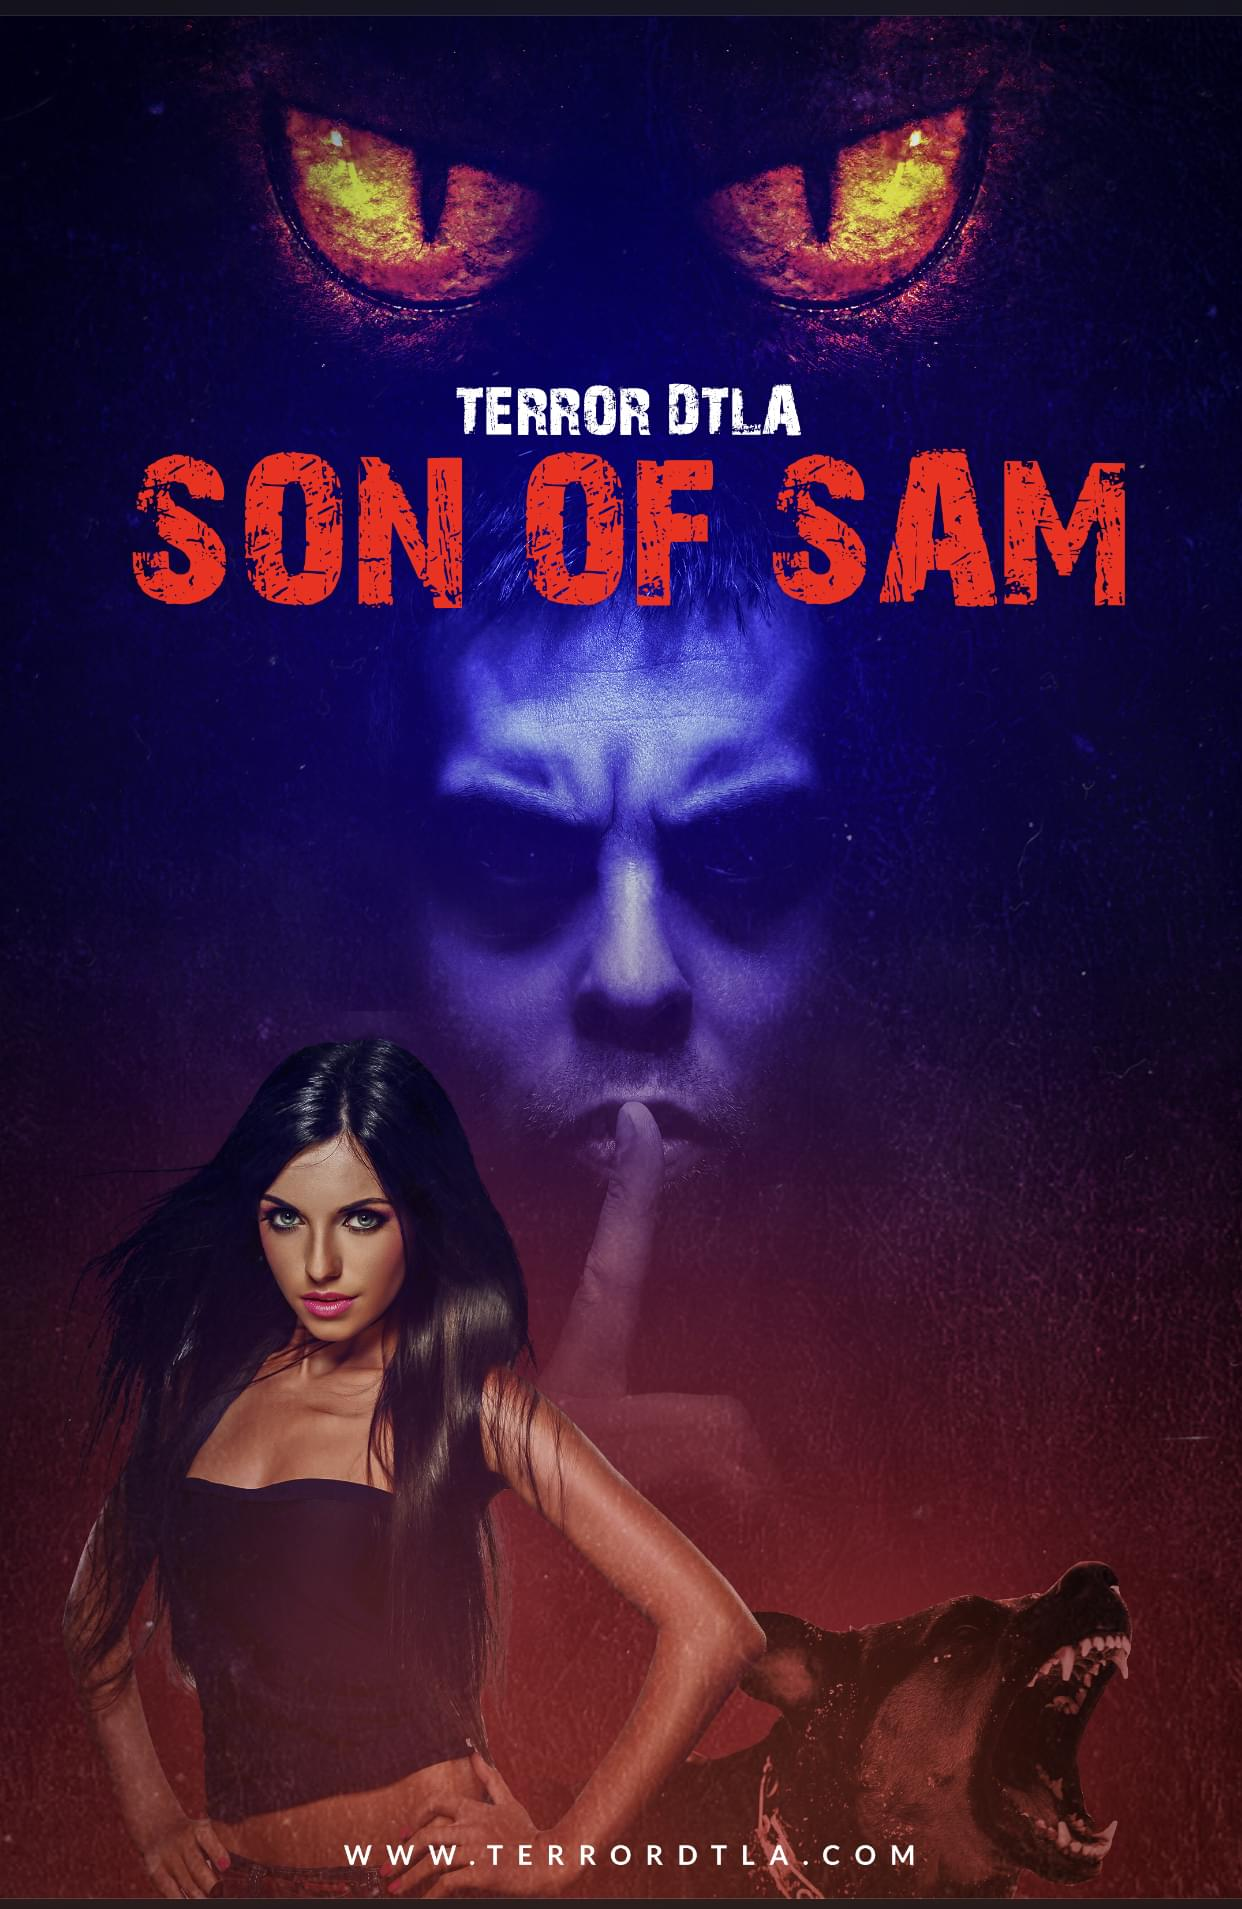 [Immersive Experience] Terror DTLA: Son of Sam